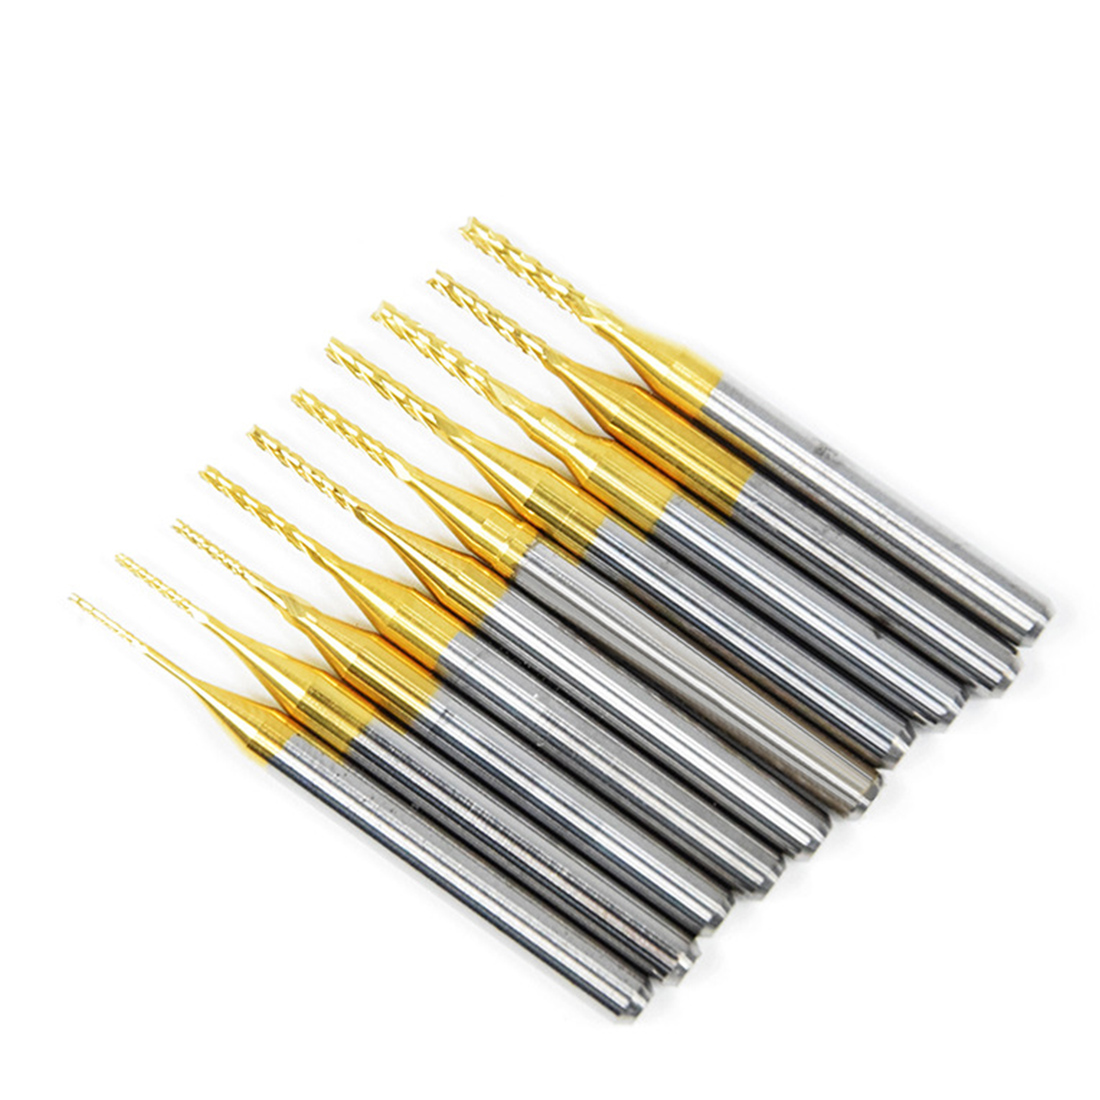 New Titanium Coated Milling Cutter Engraving Edge Cutter CNC Router Bits End Mill For PCB Machine 0.80mm/1.0mm/1.2mm/1.5mm/1.6mm